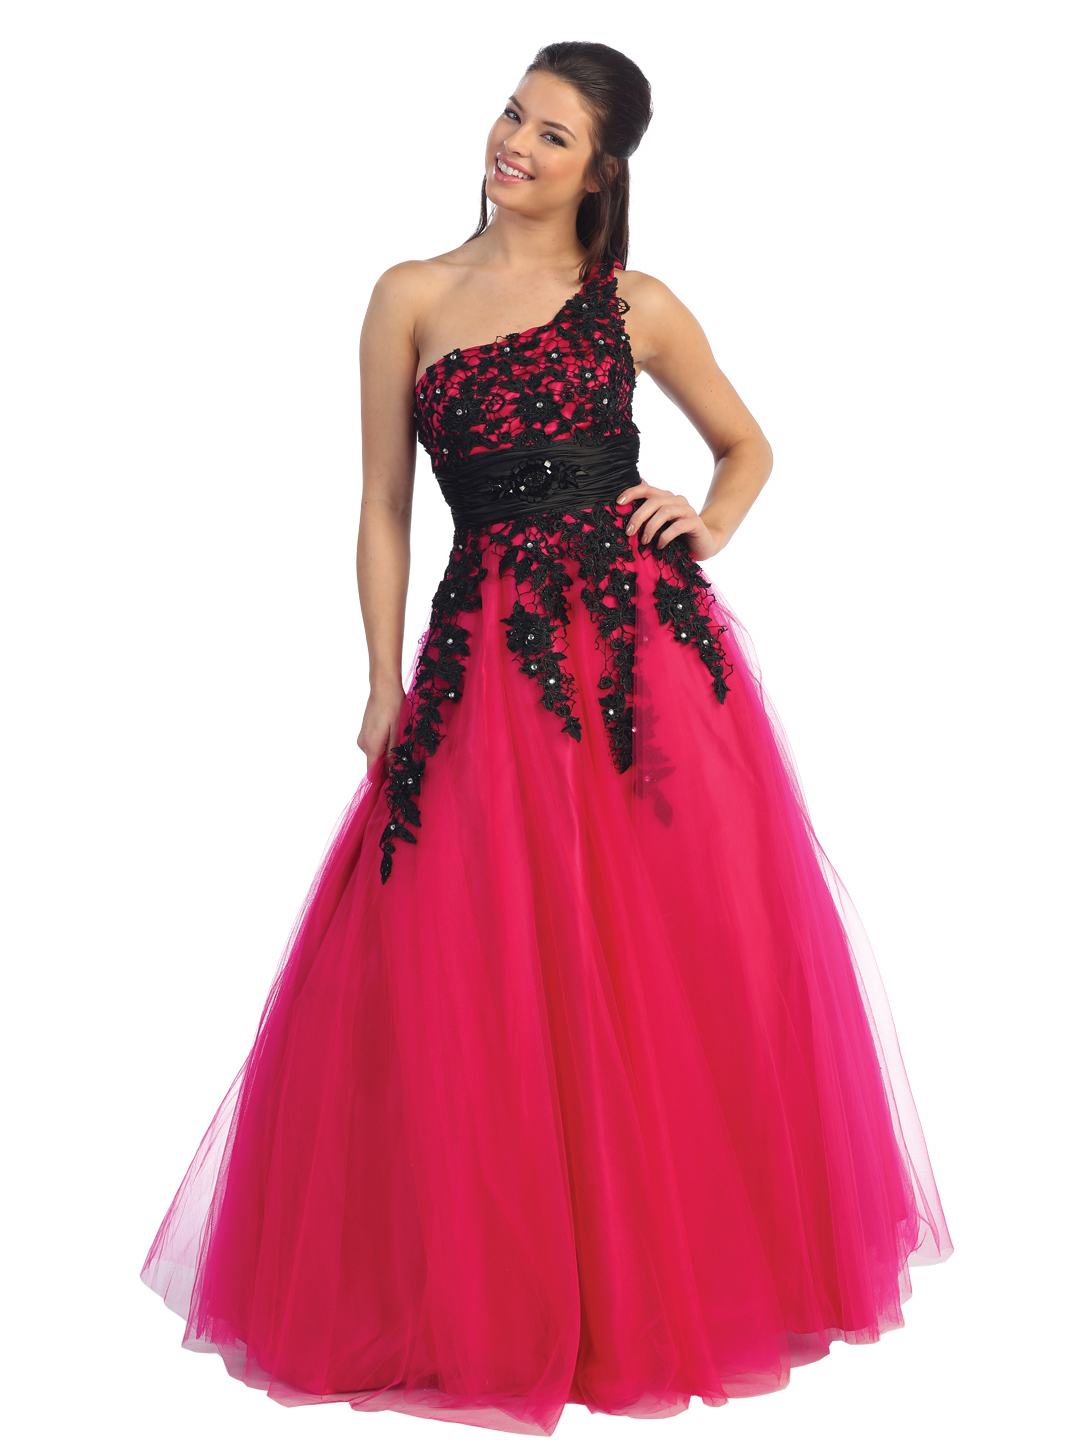 Plus size prom dress stores in los angeles formal dresses for Plus size wedding dresses los angeles